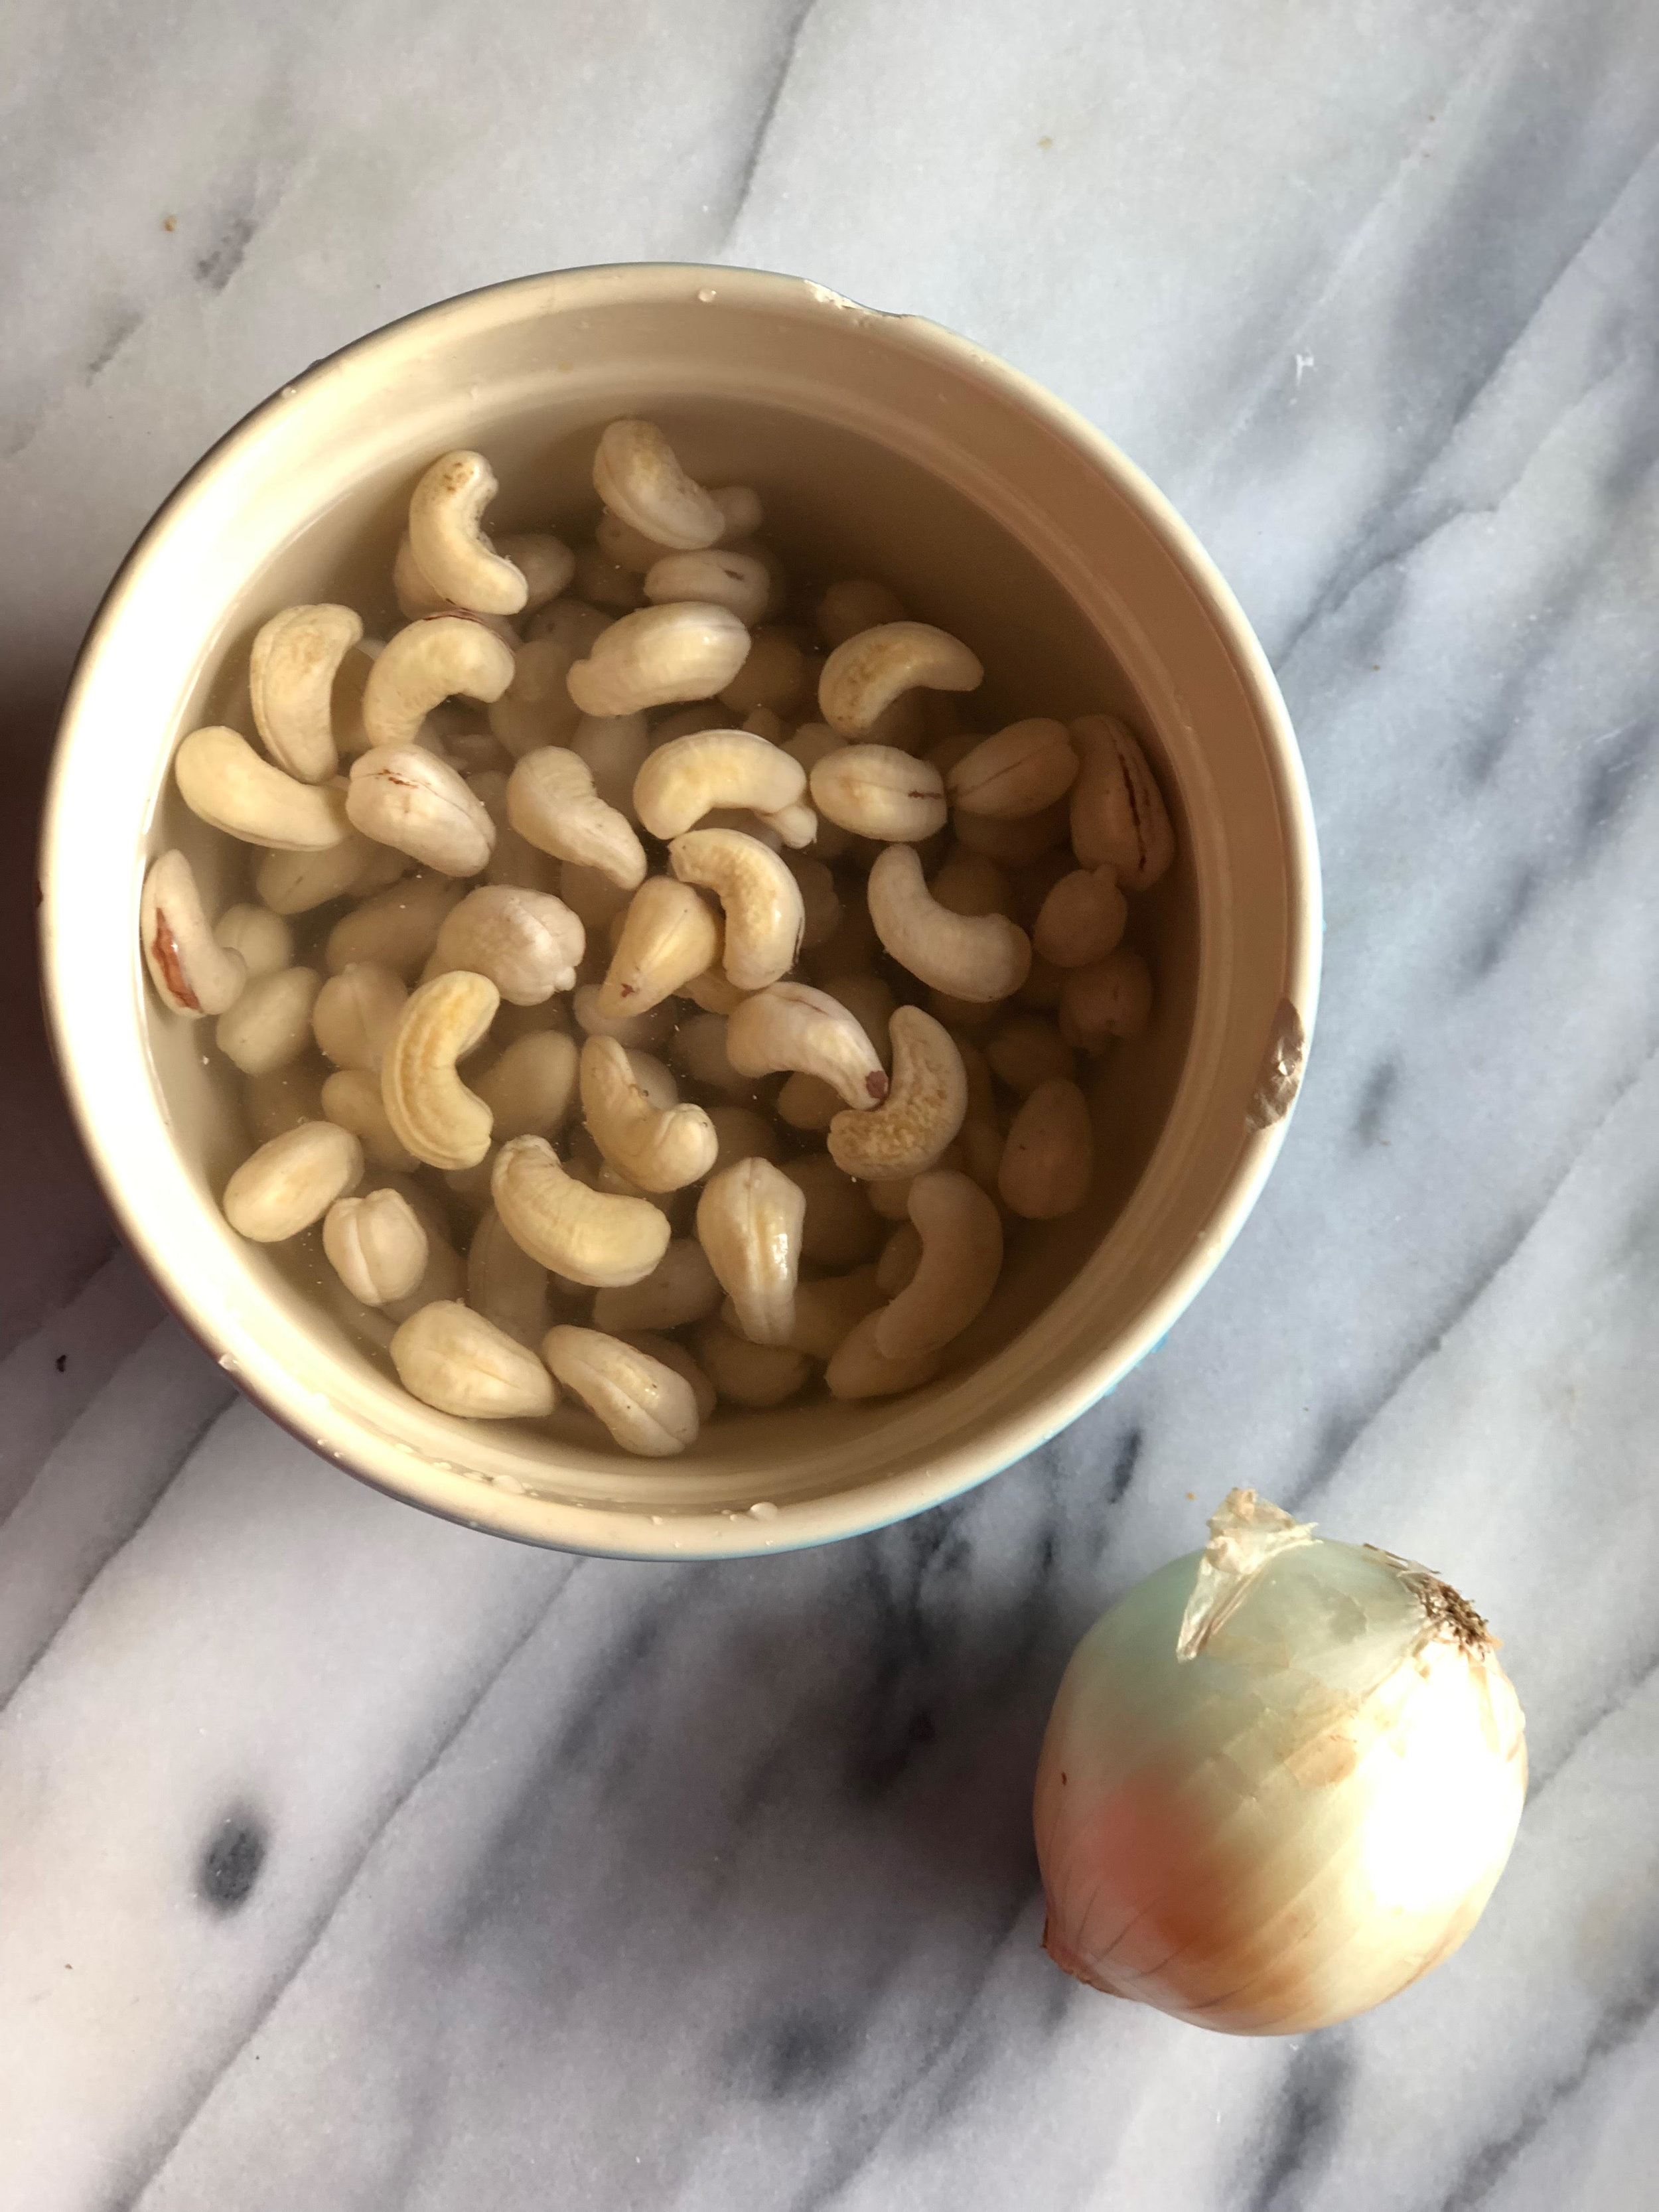 "Plant Based ""Mayo"" - ngredients:1/2 cup of cashews (soaked 3-4 hours or overnight)1/4 - 1/2 cup of water, add slowly for desired consistency1 1/2 teaspoons of lemon juice2 1/4 teaspoons of apple cider vinegar1/8+ teaspoon of salt (to taste)Put everything in a blender (or smoothie maker) and blend. Add water to get desired consistency. You can adjust the ingrediants for taste, or double the amount for more. I save in a jar for 3-4 daysThe recipe can be doubled for more"